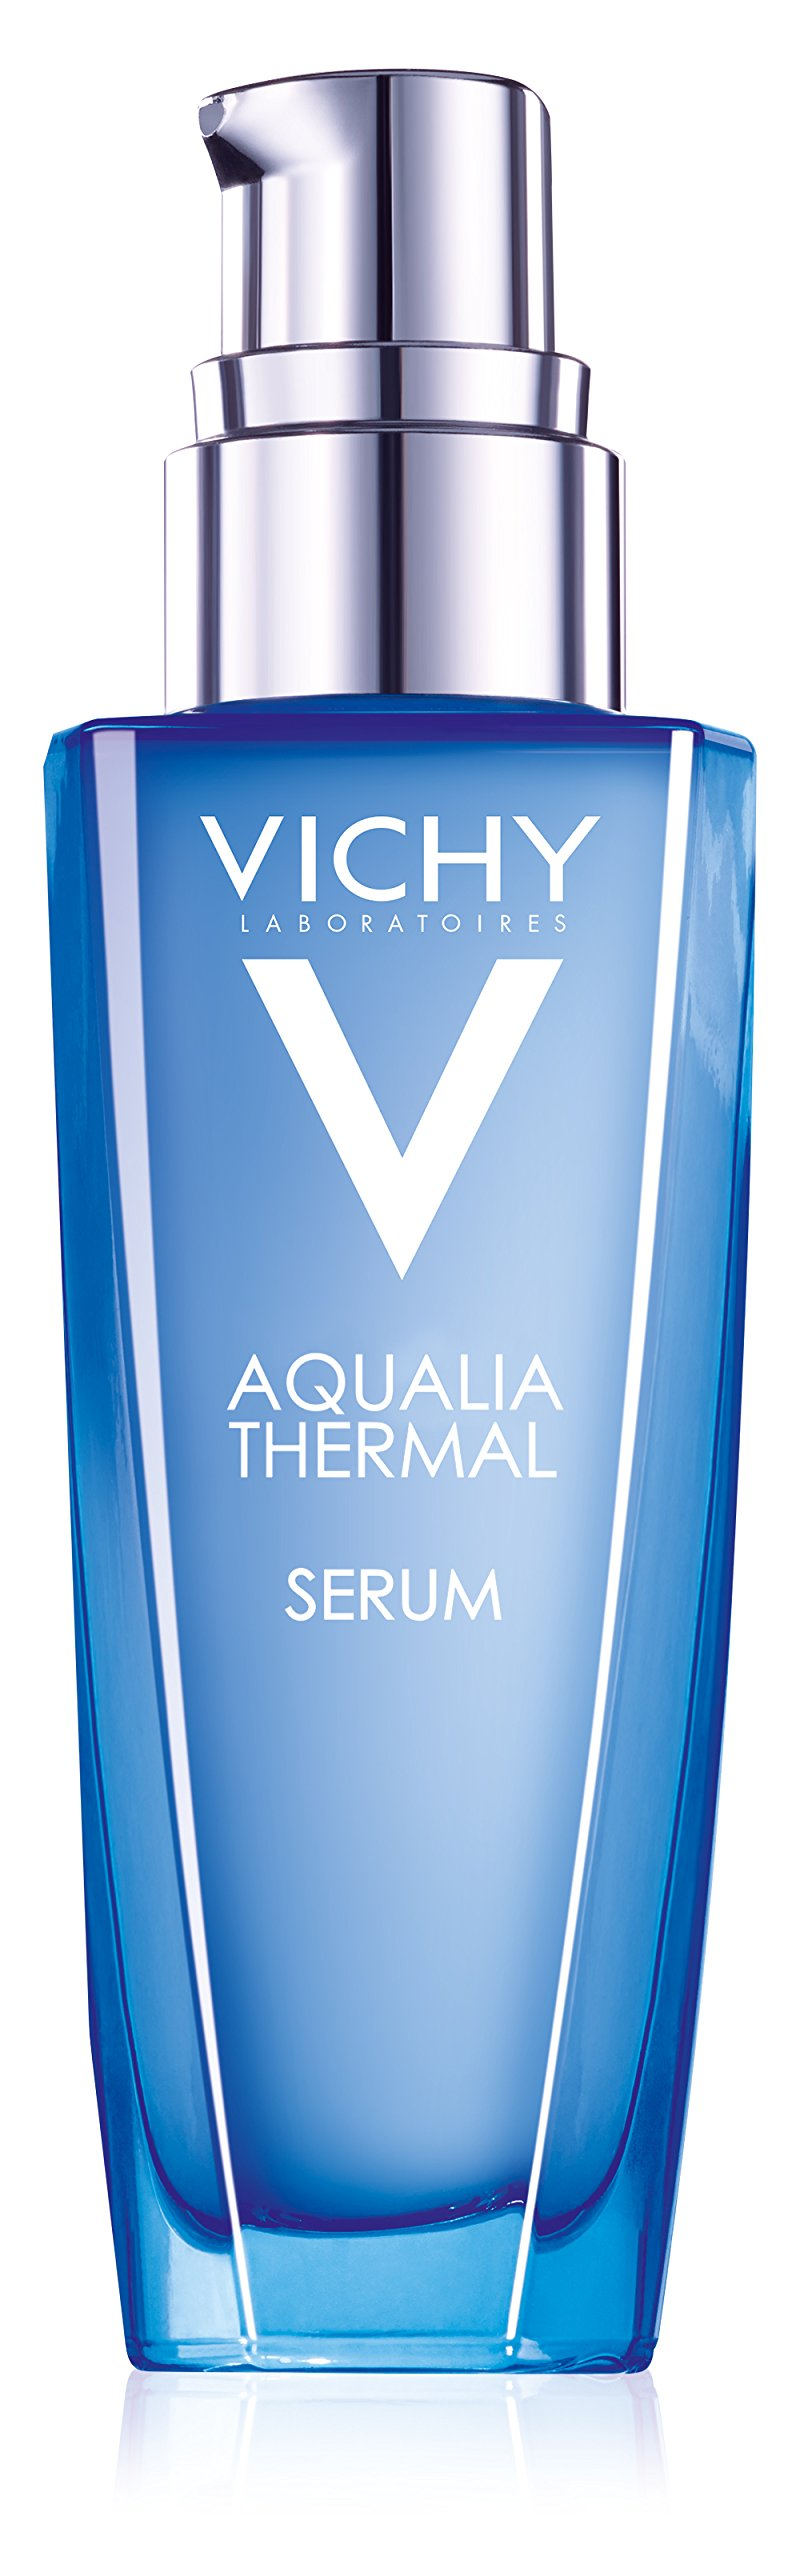 Vichy Aqualia Thermal Power Serum with Hyaluronic Acid